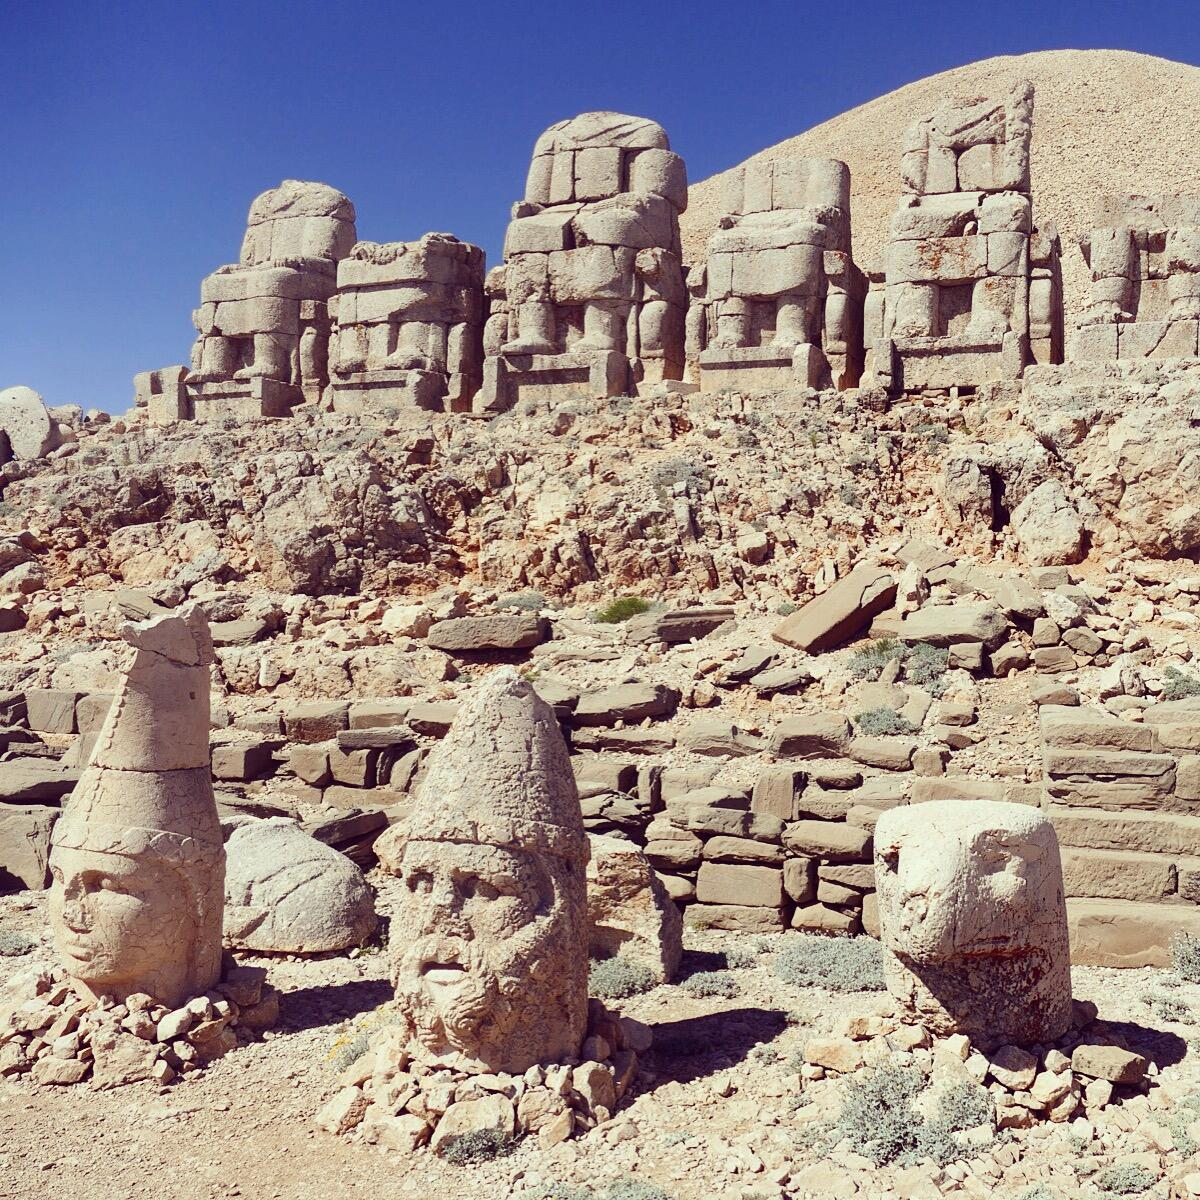 These stone sculptures atop Mount Nemrut are more than 2,000 years old. Noah Strycker